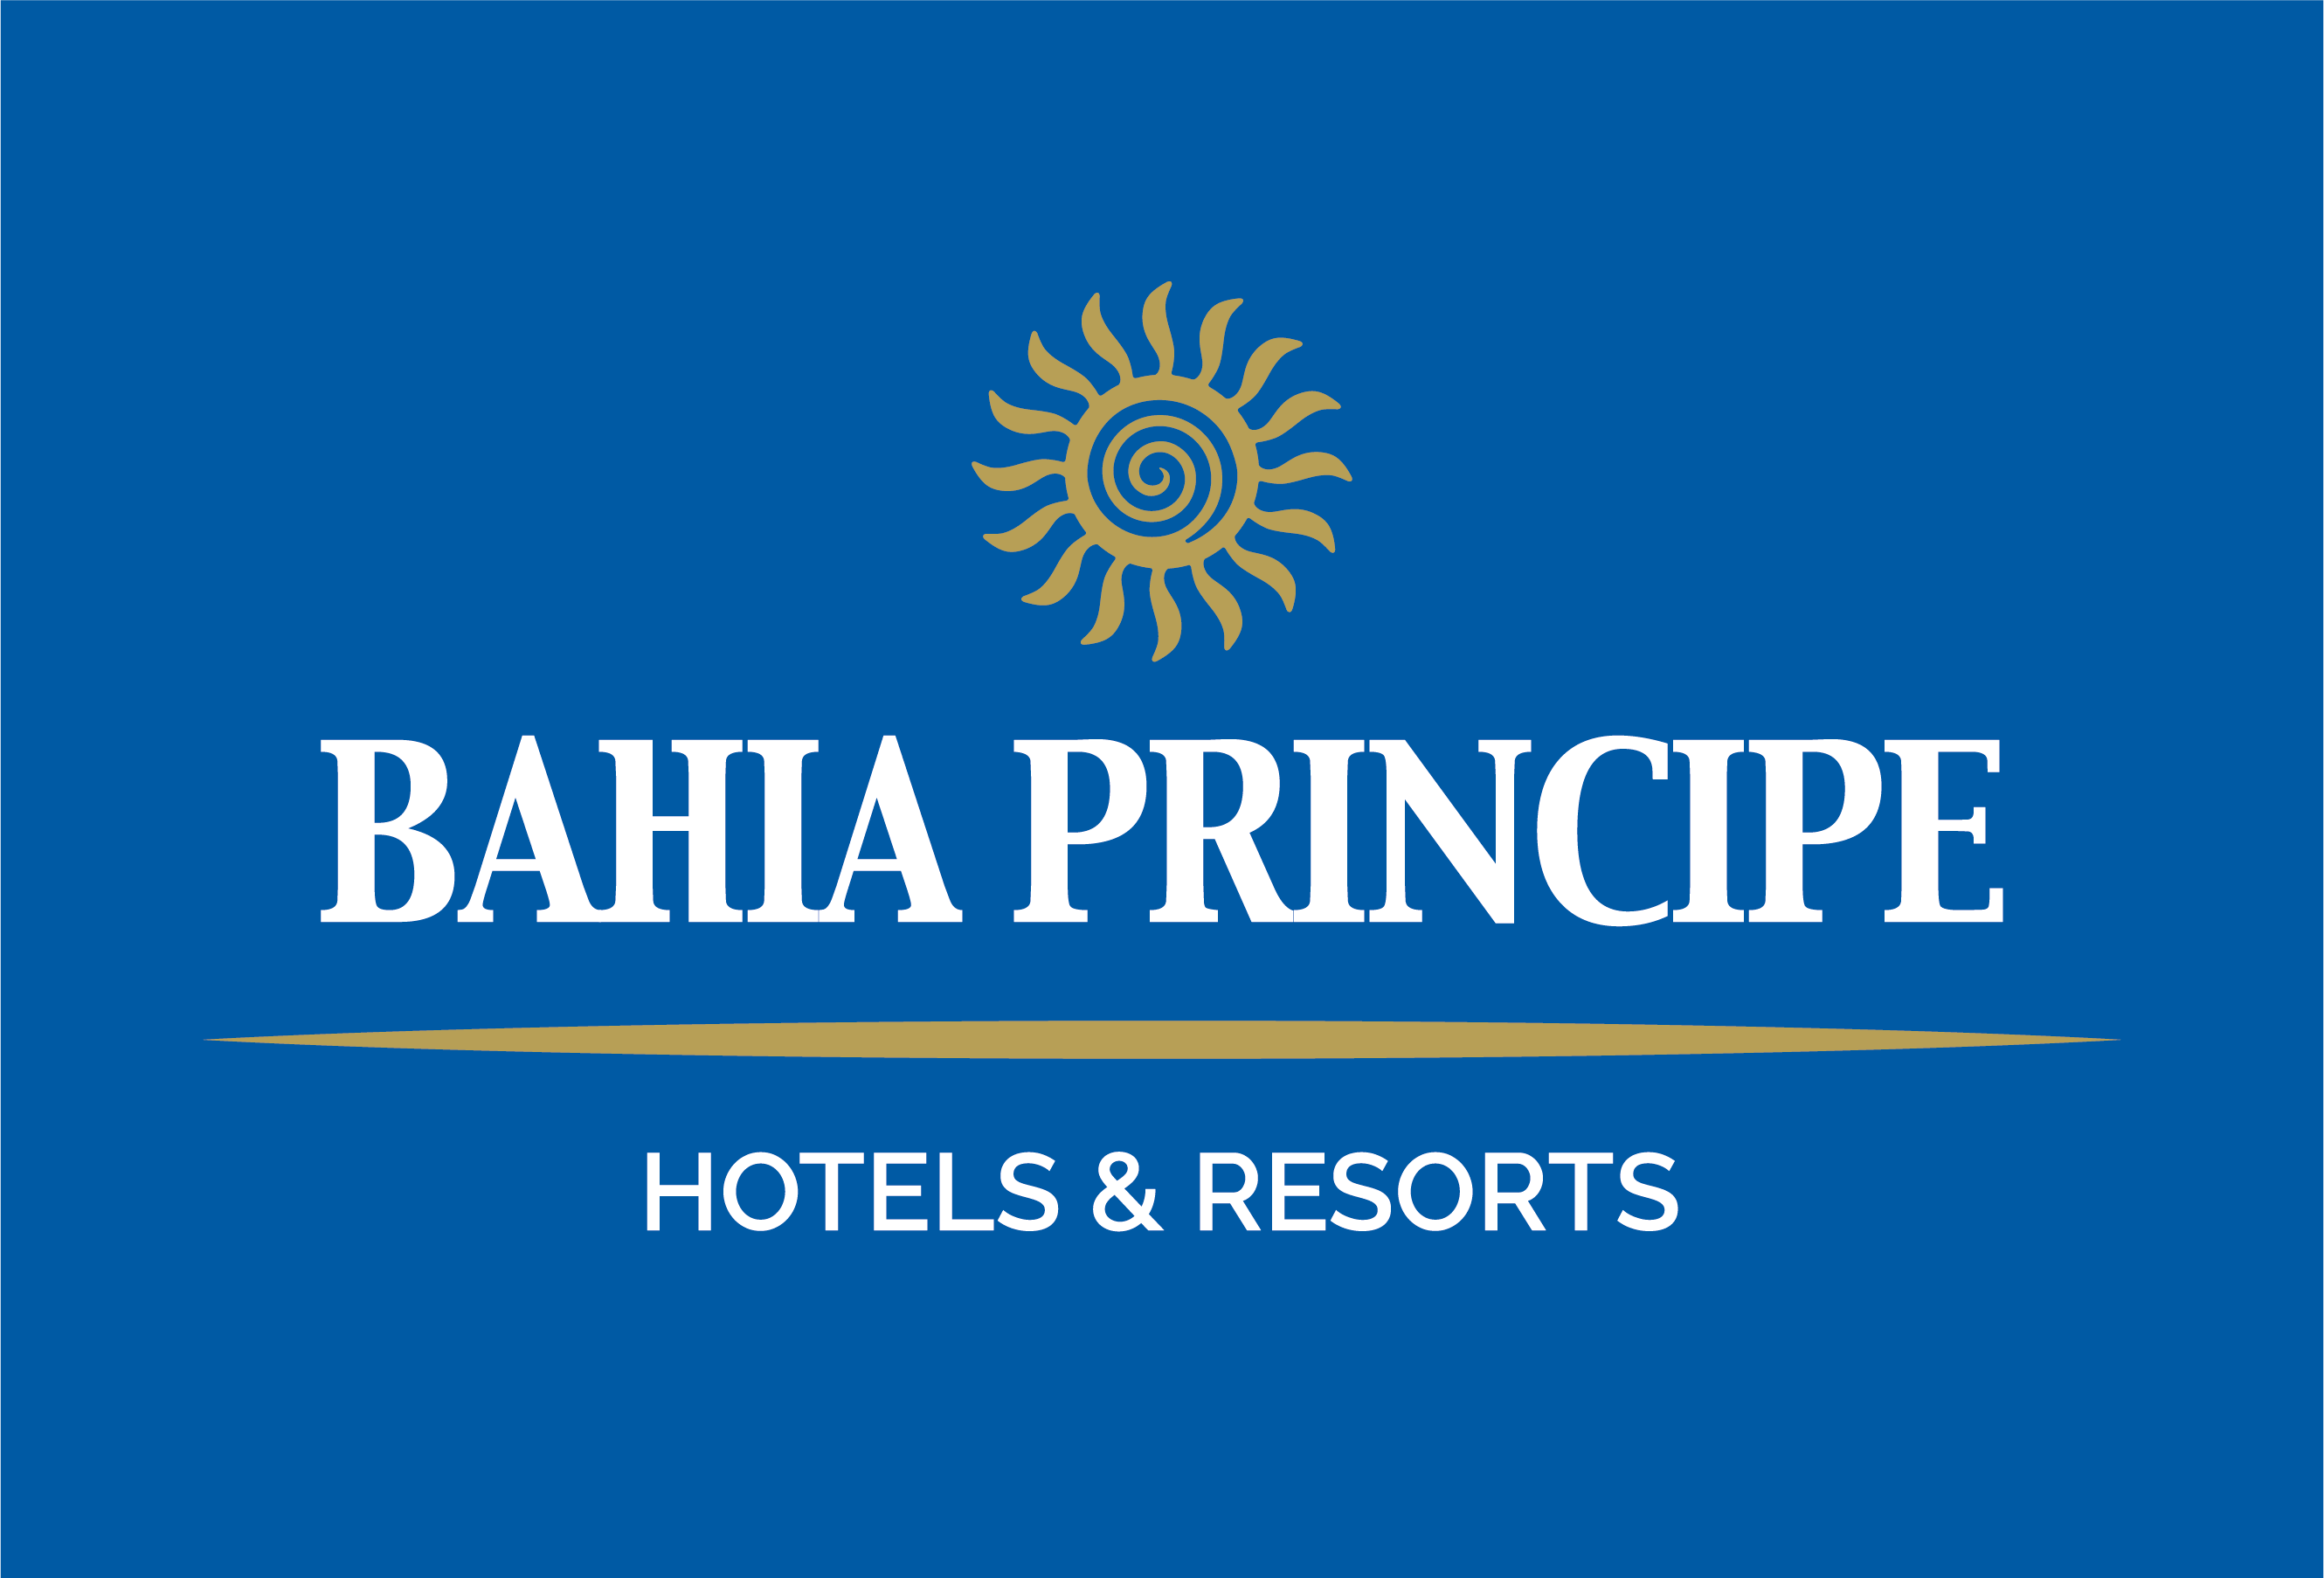 BAHIA PRINCIPE Hotels & Resorts